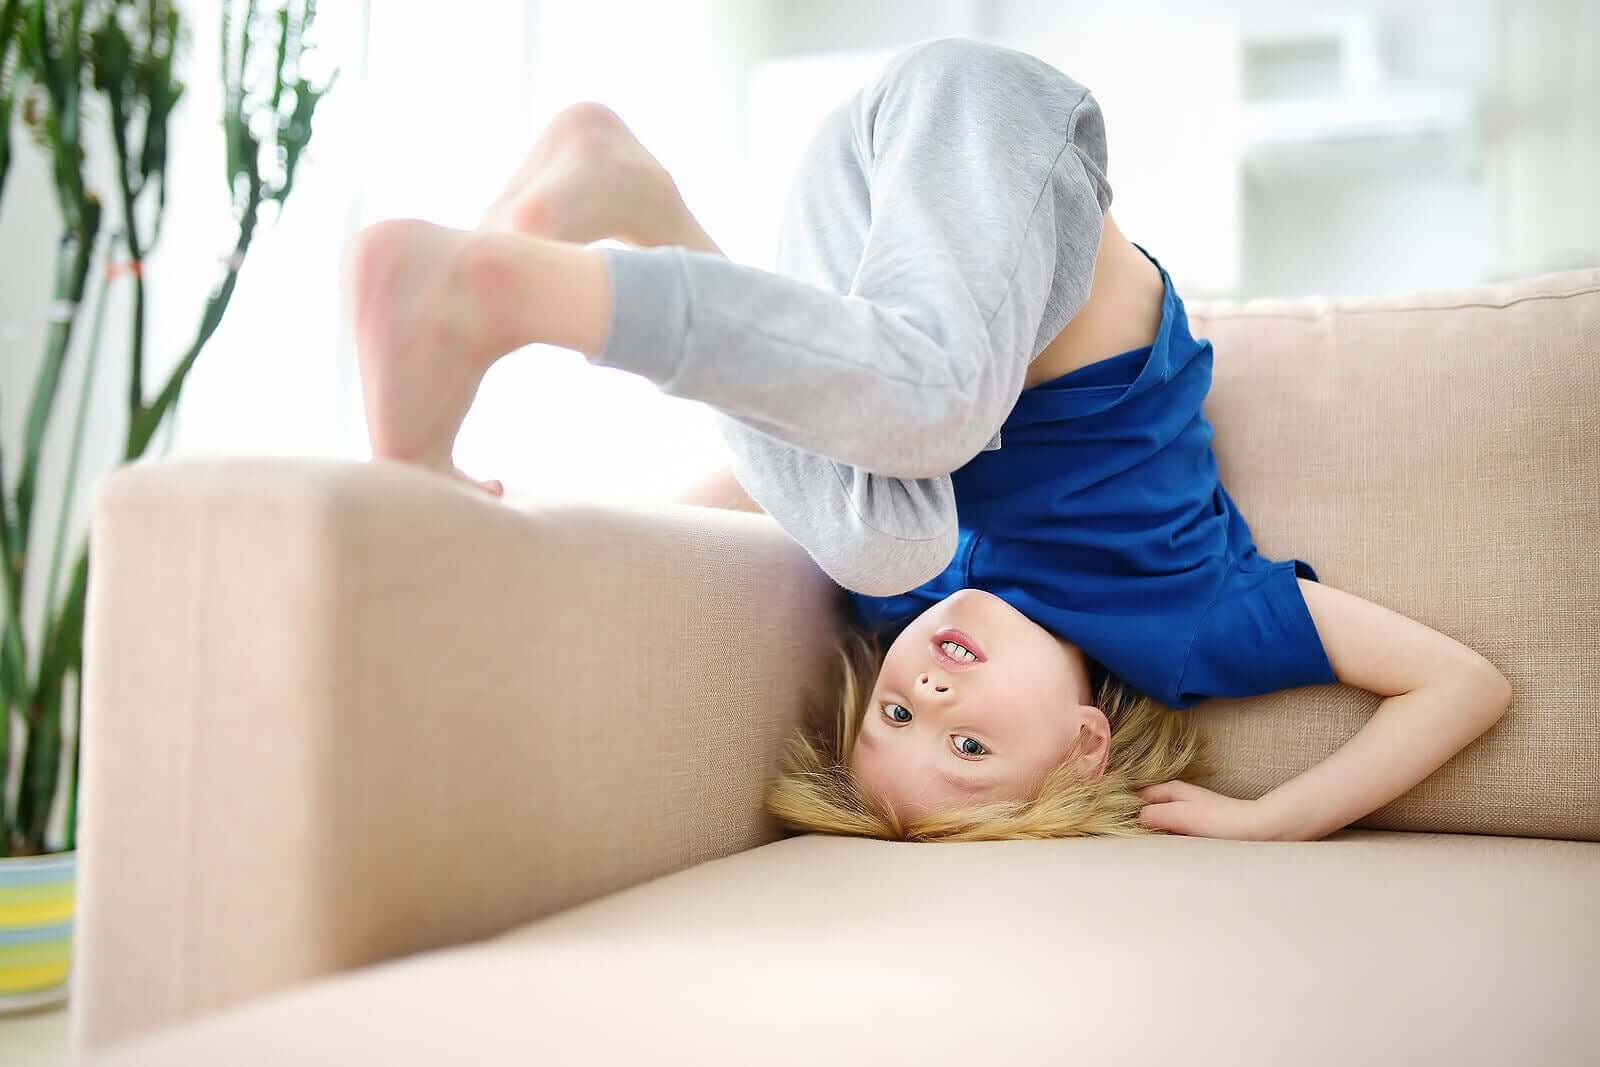 A child tumbling on a couch.